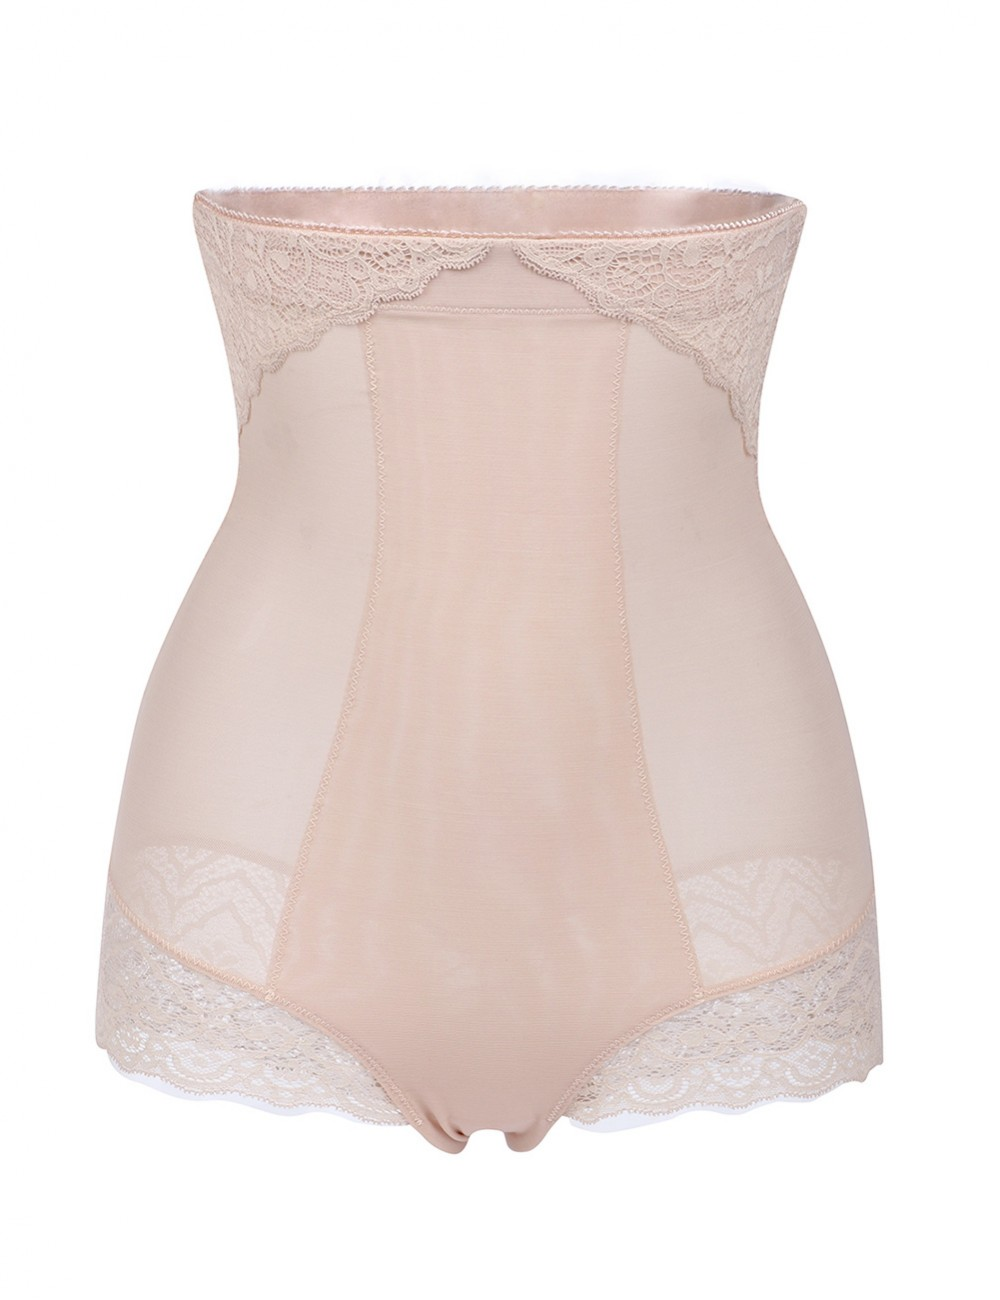 Nude Lace Patchwork High Waist Butt Lifter Big Size Posture Correct